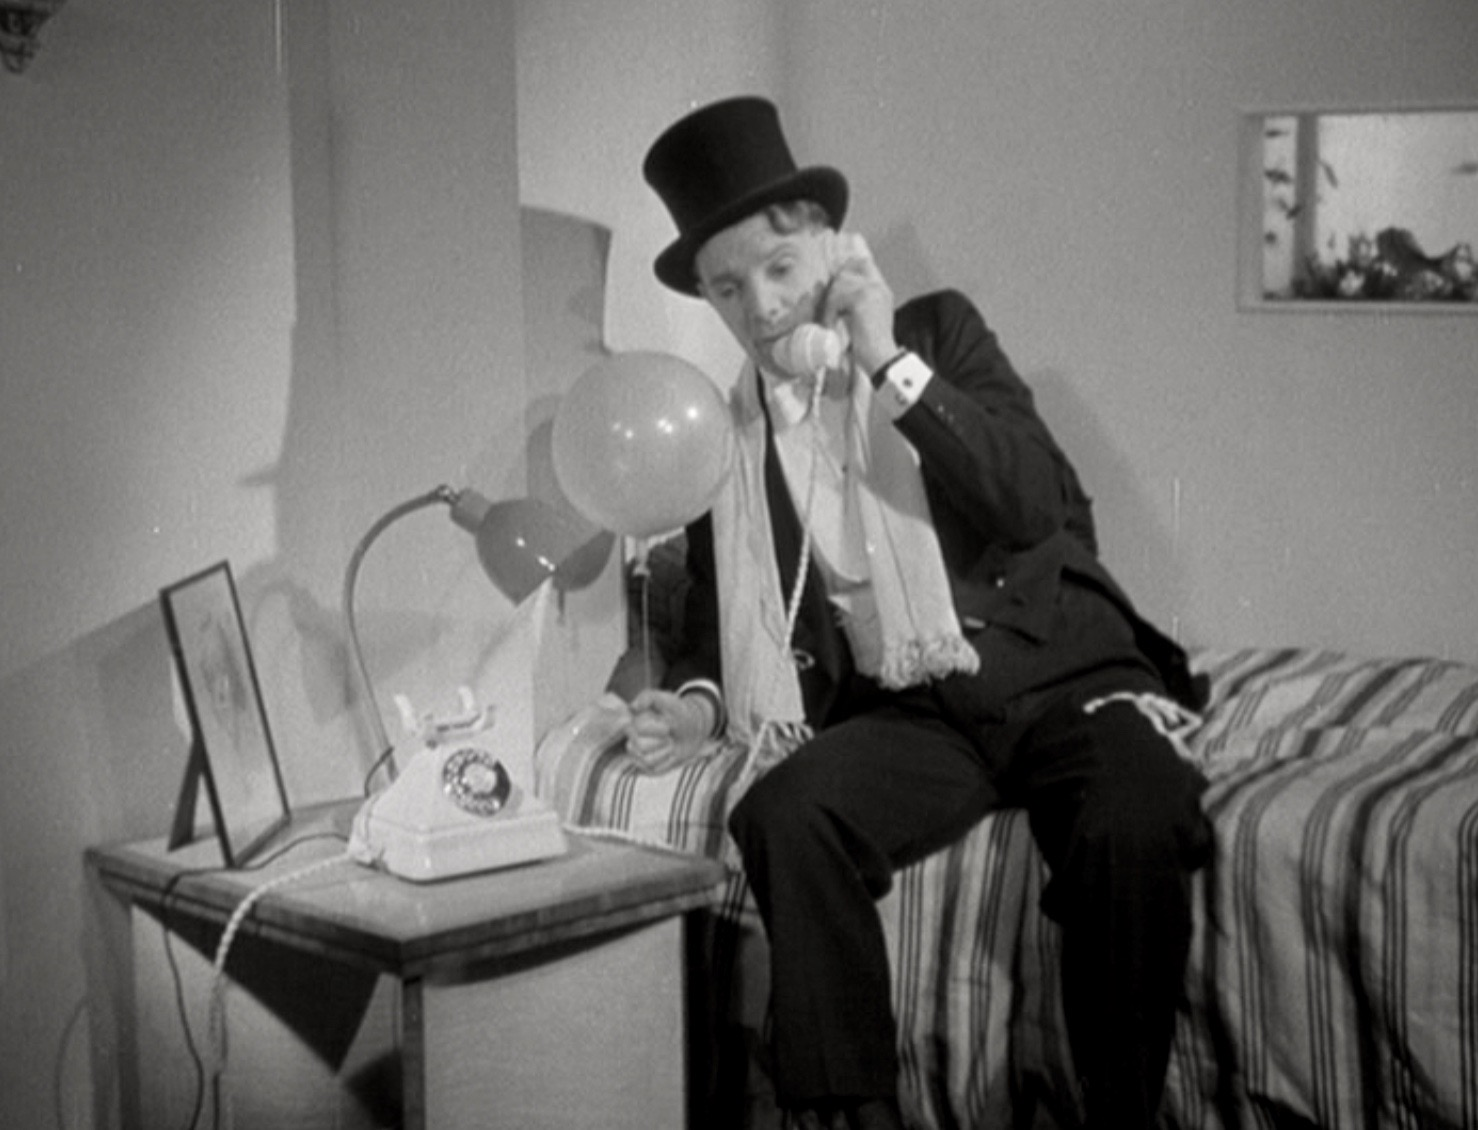 A Bright Young Thing learns that the home telephone can make modern life much easier in The Fairy of the Phone (1936).